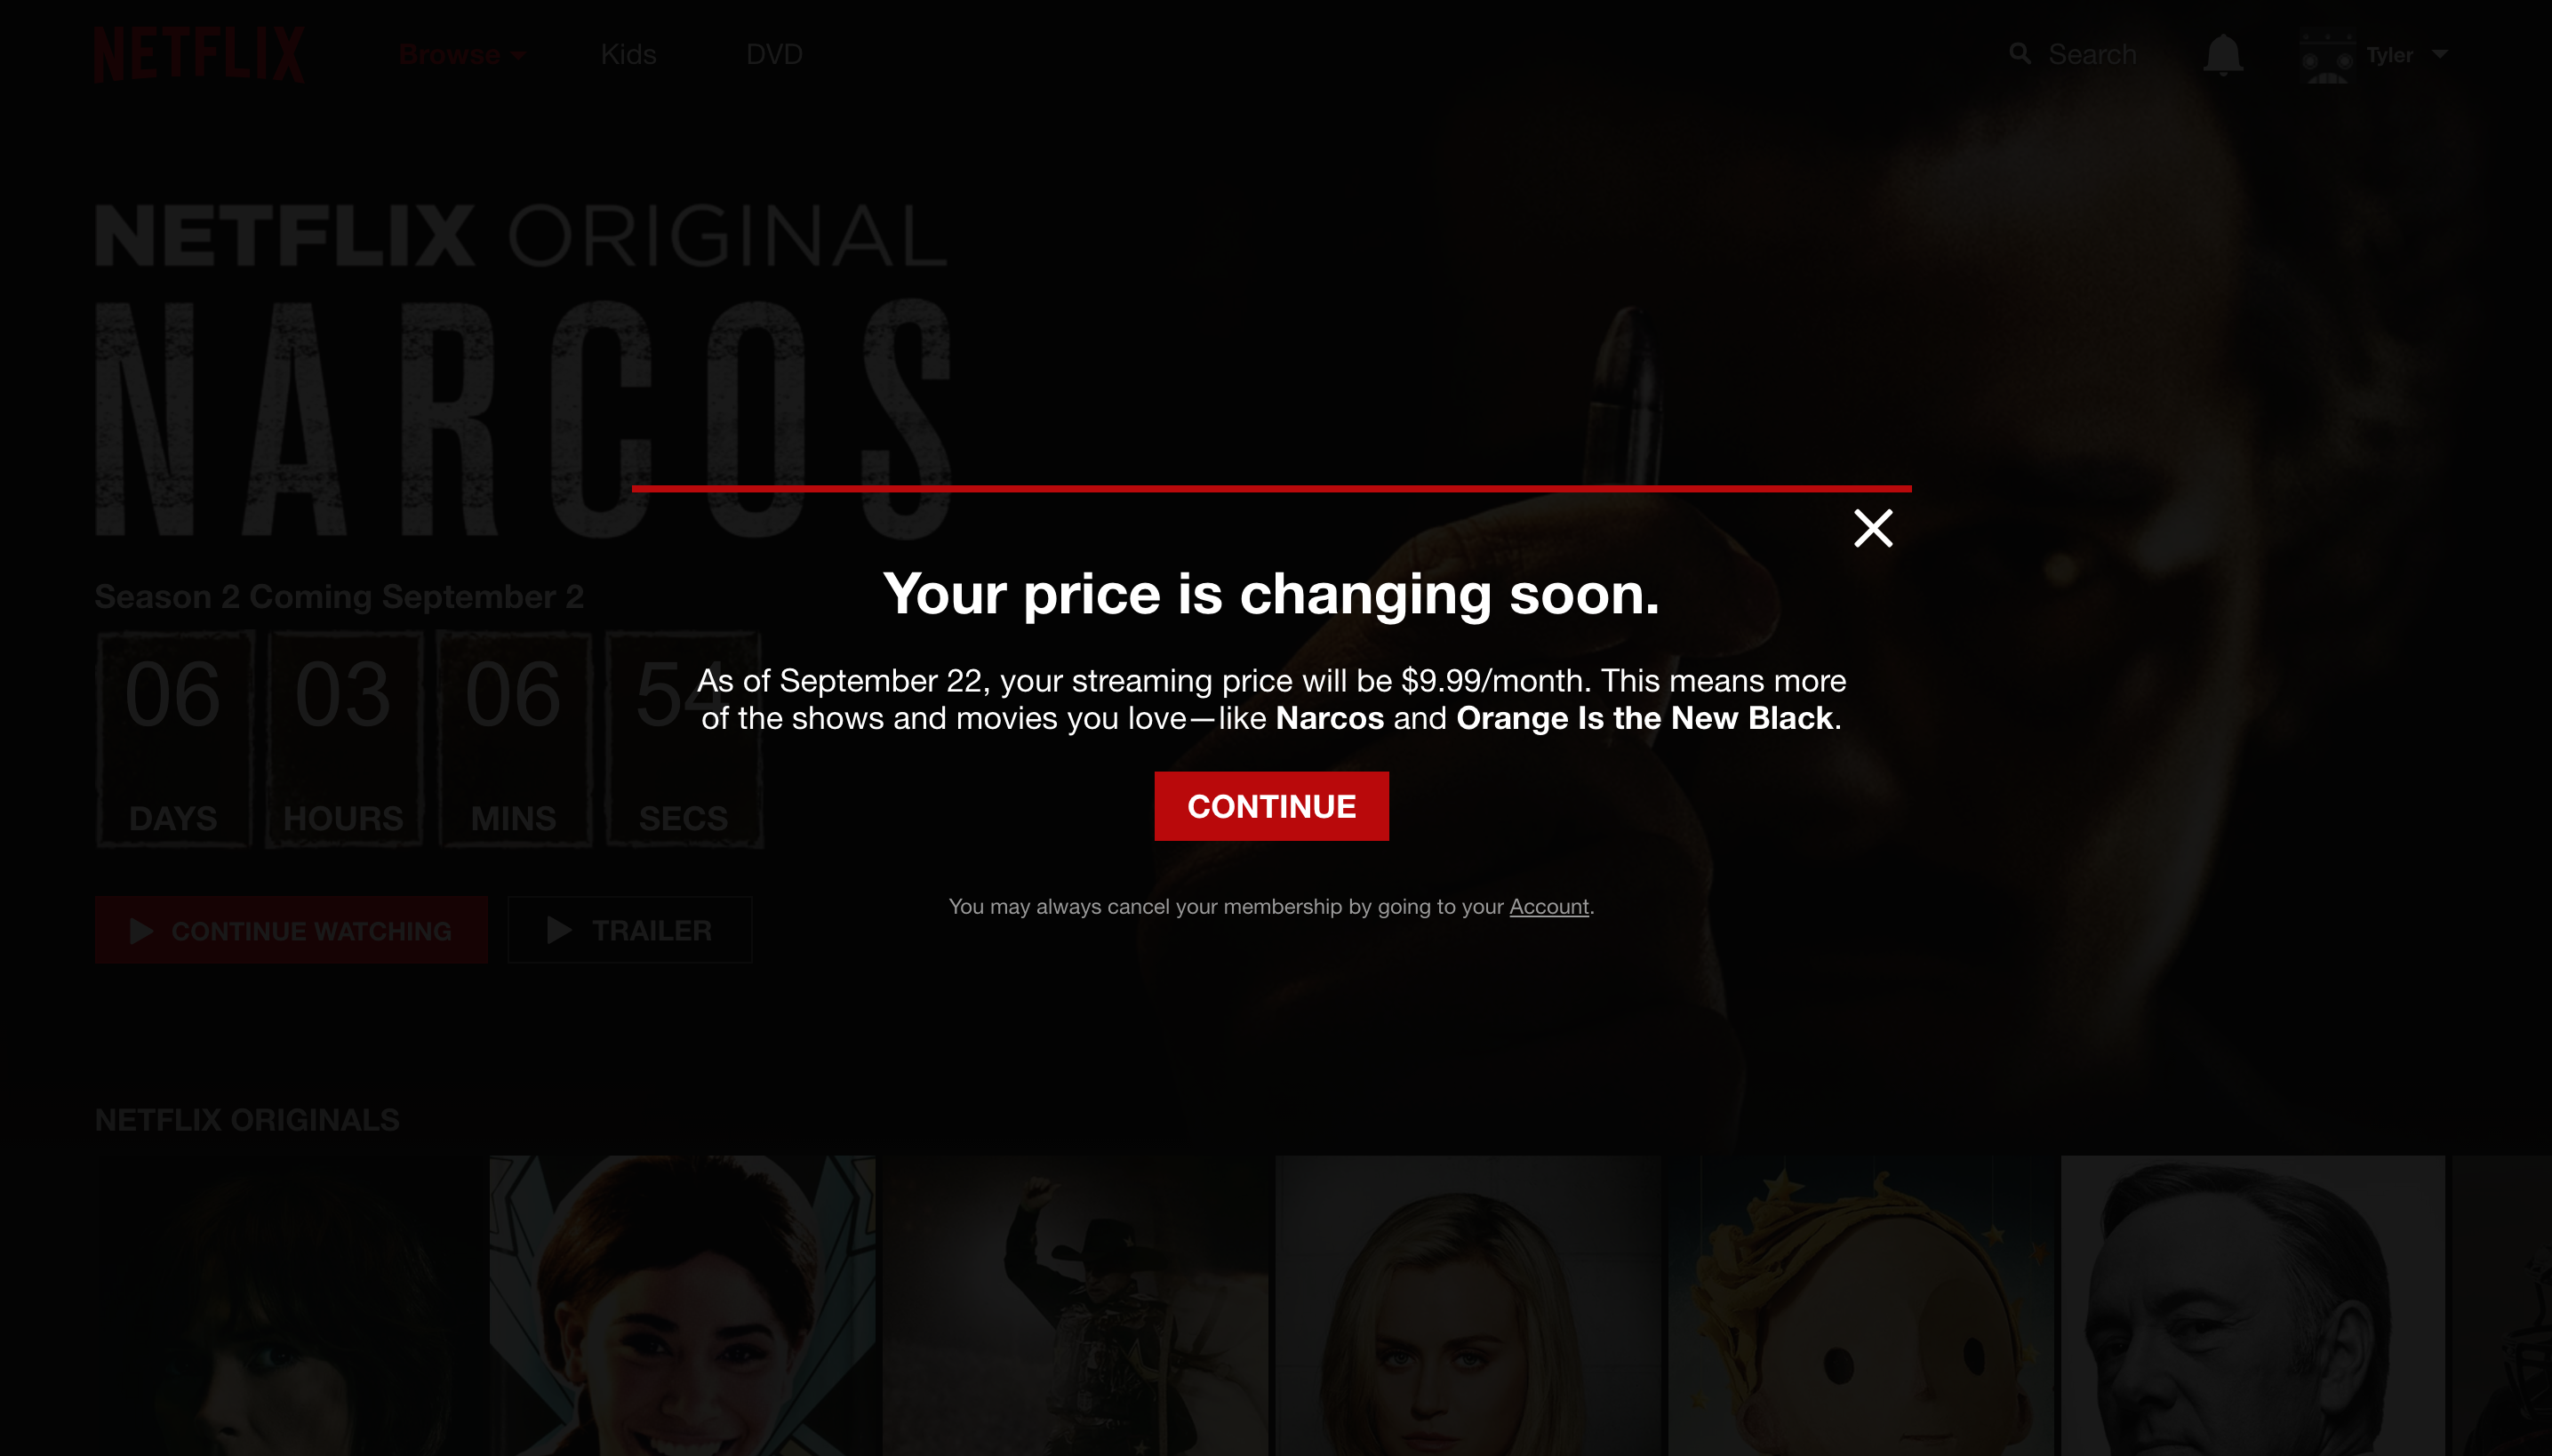 Netflix pricing fullscreen